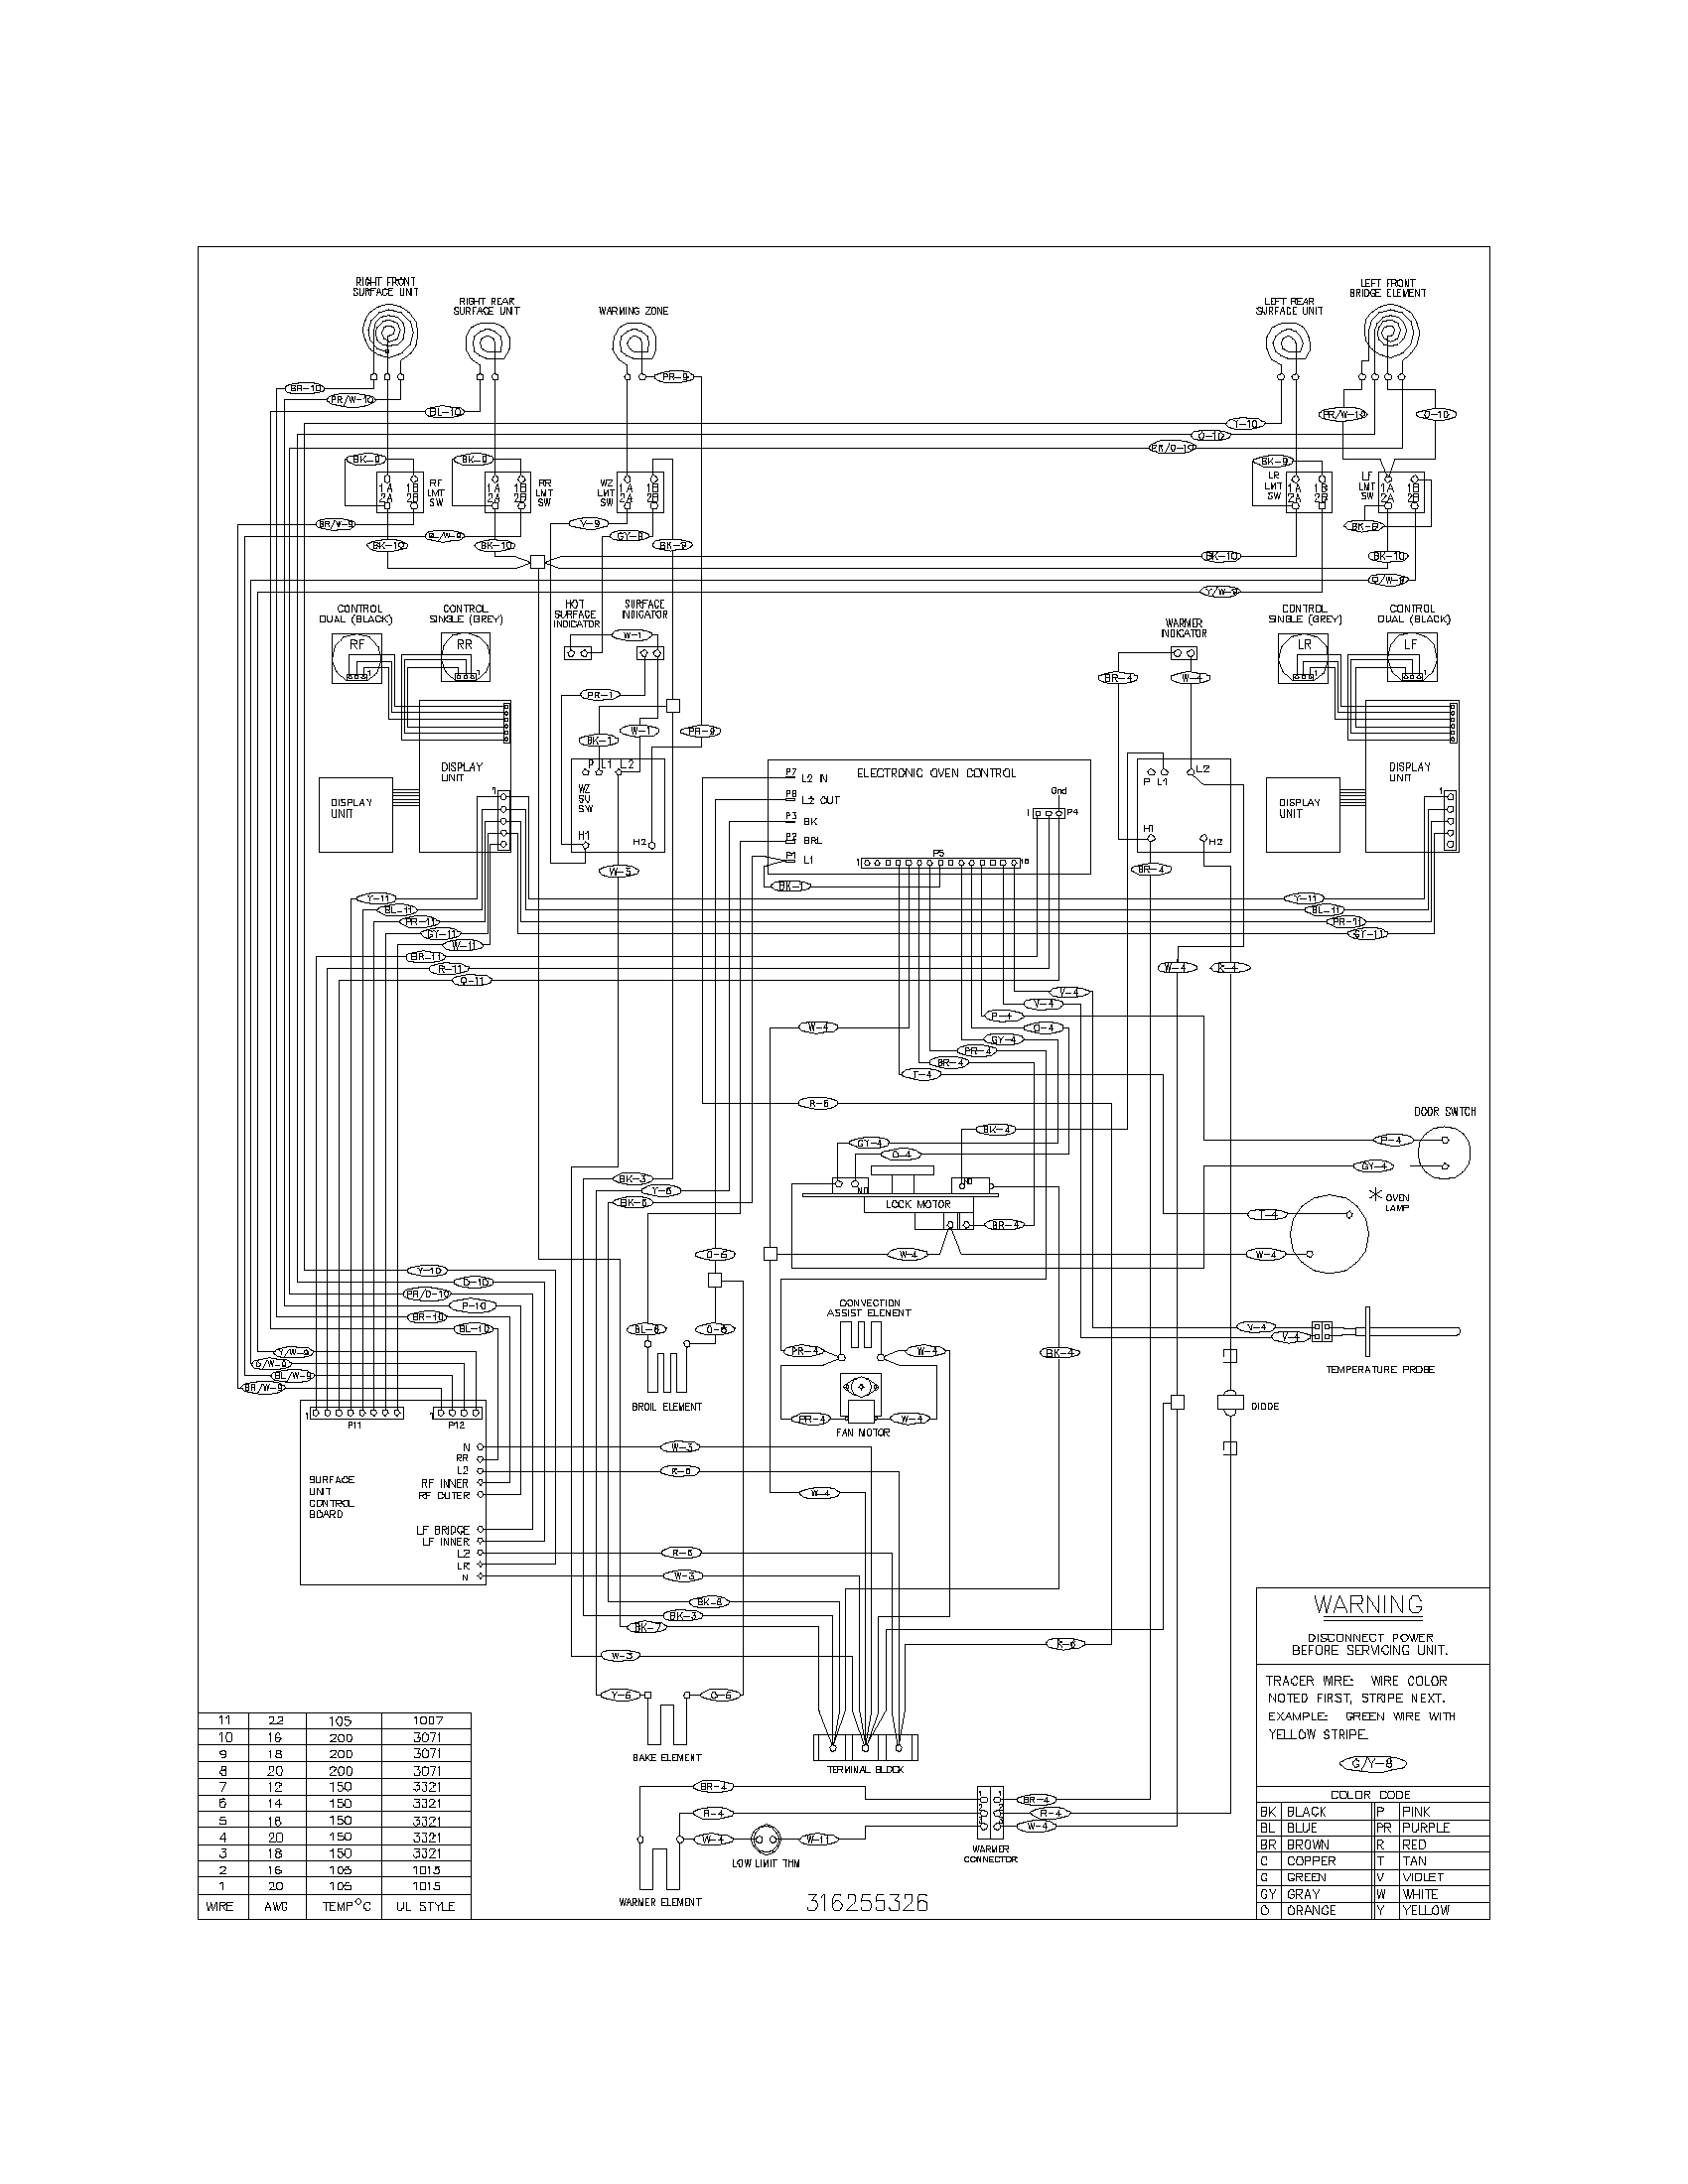 Stove Switch Wiring Diagrams : 28 Wiring Diagram Images